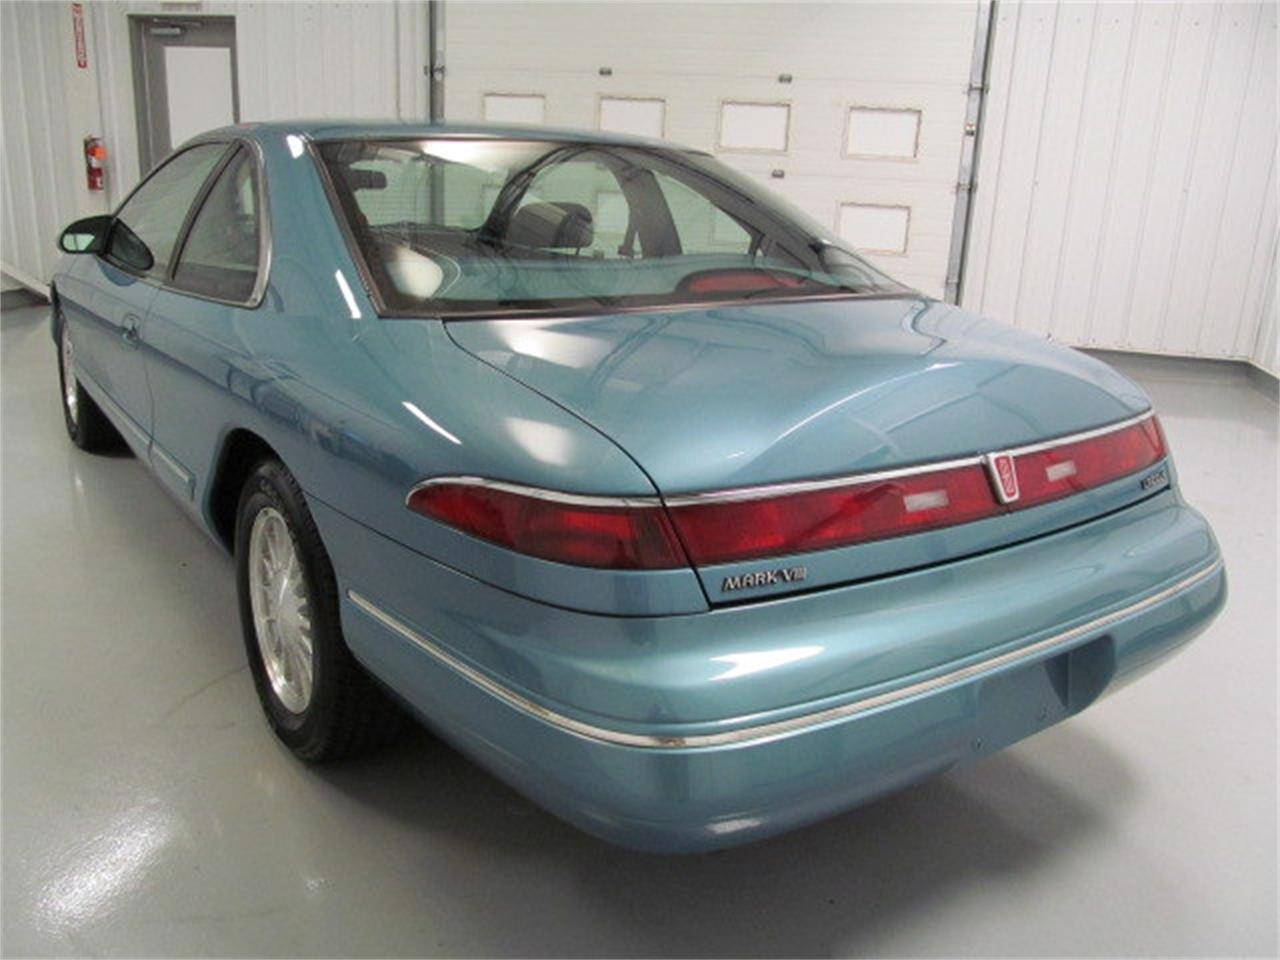 Large Picture of 1993 Lincoln Mark VIII located in Virginia Offered by Duncan Imports & Classic Cars - JL9Z